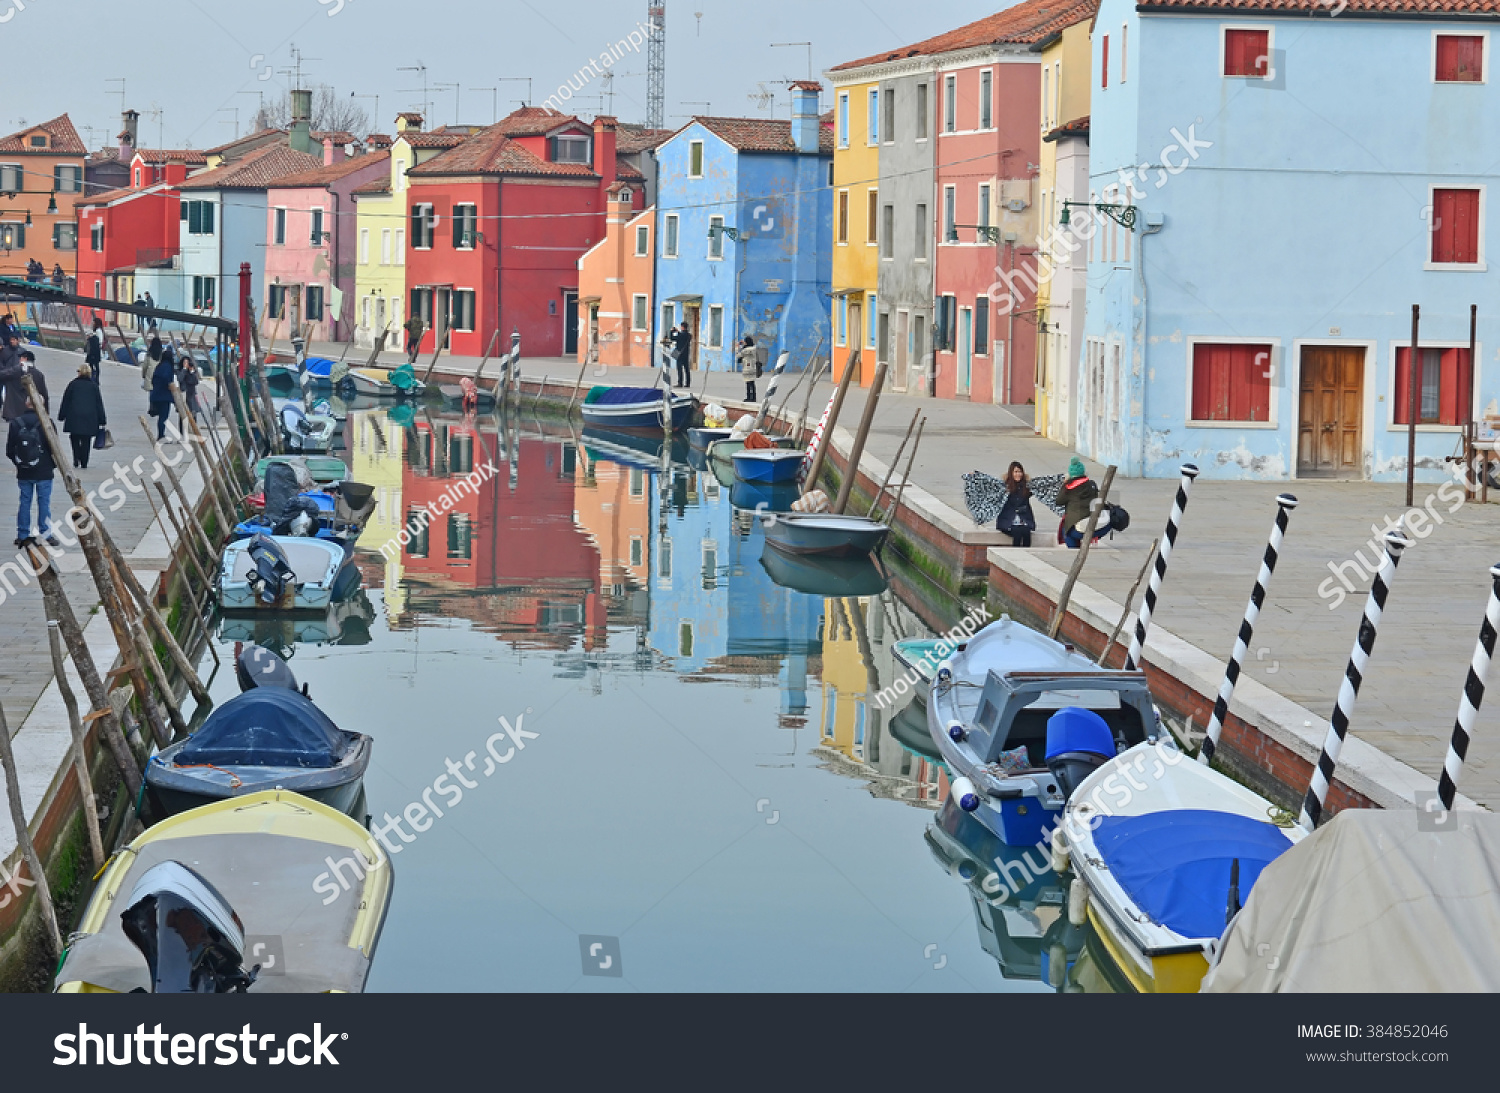 Colorful burano italy burano tourism - Burano Italy January 27 Tourists Enjoying The Colorful Houses Along The Canal On